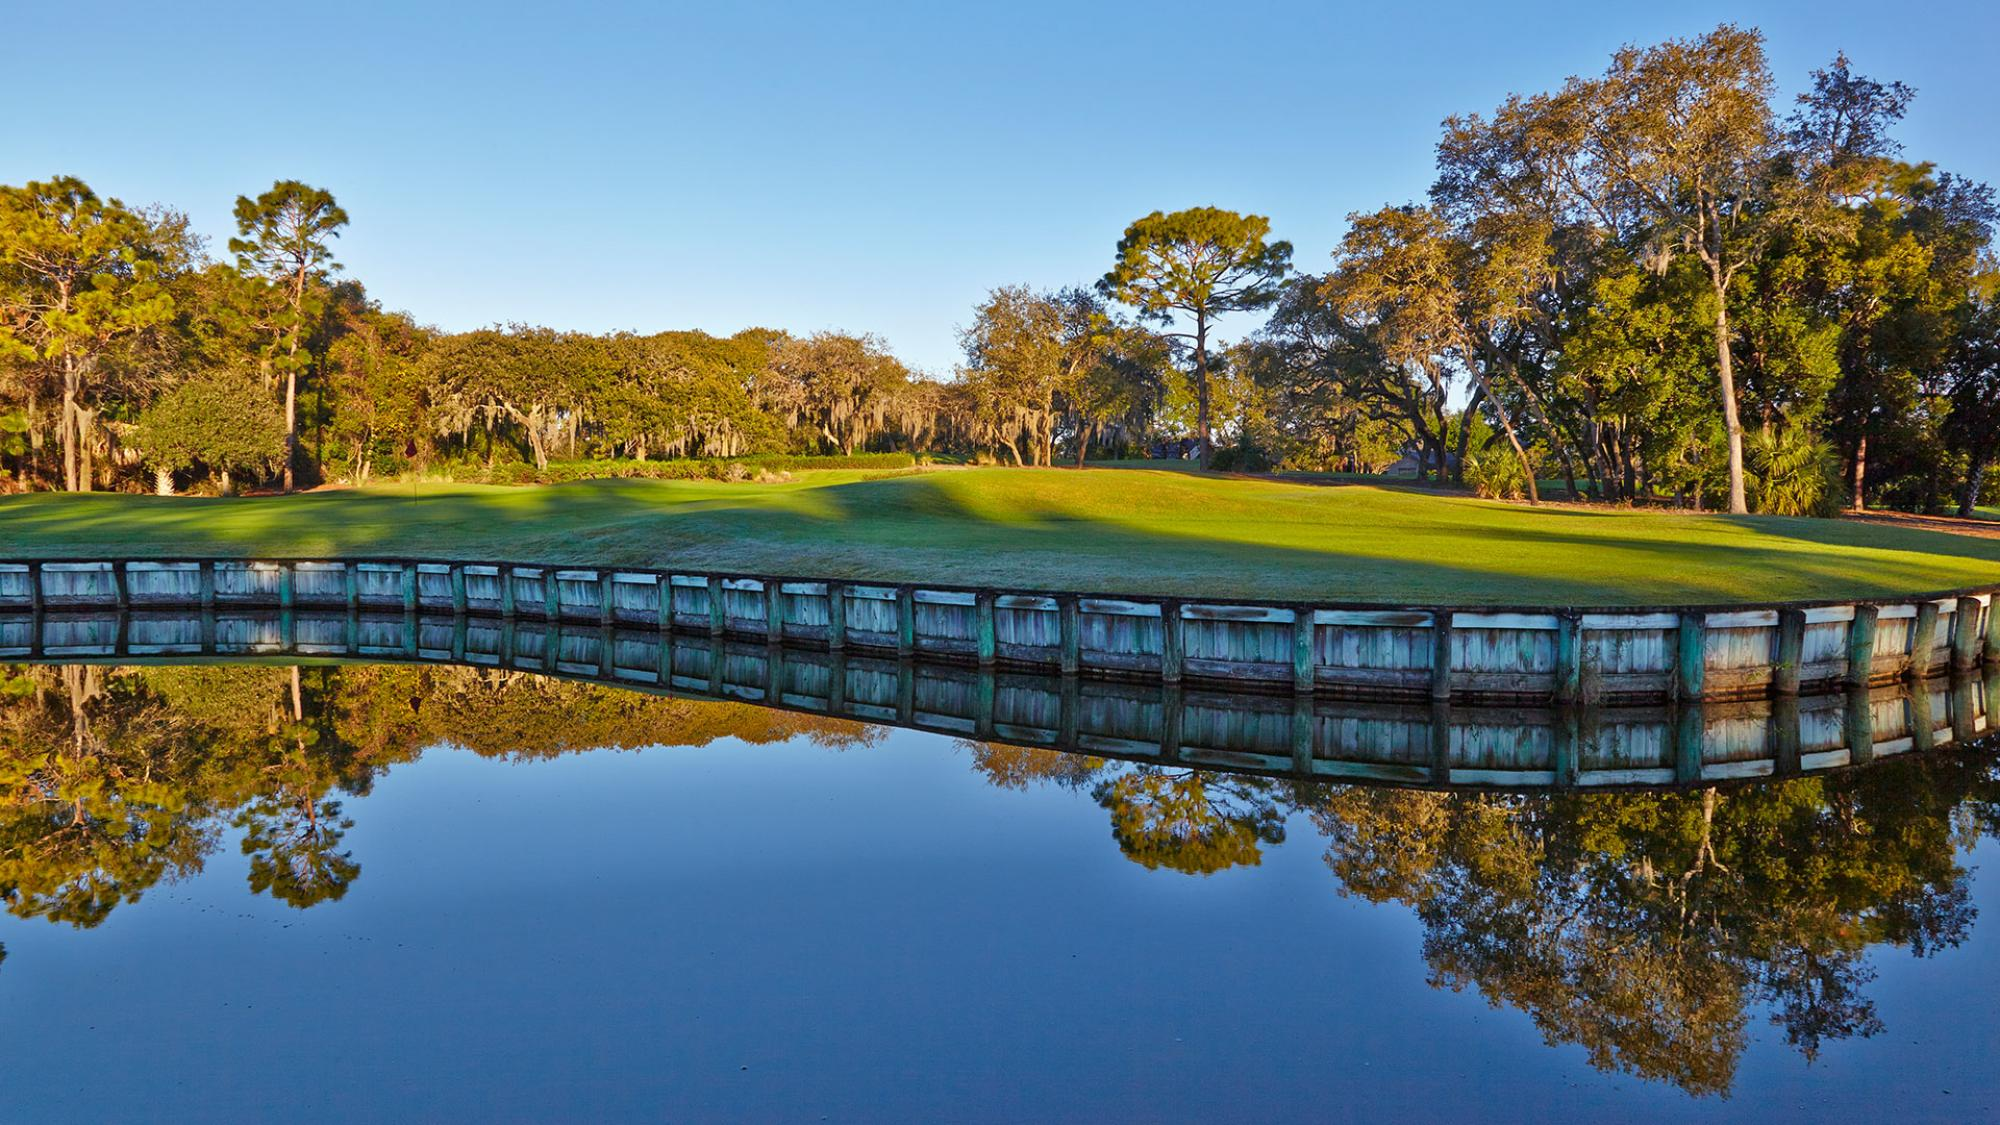 The Innisbrook, A Salamander Golf  Spa Resort's picturesque golf course within gorgeous Florida.